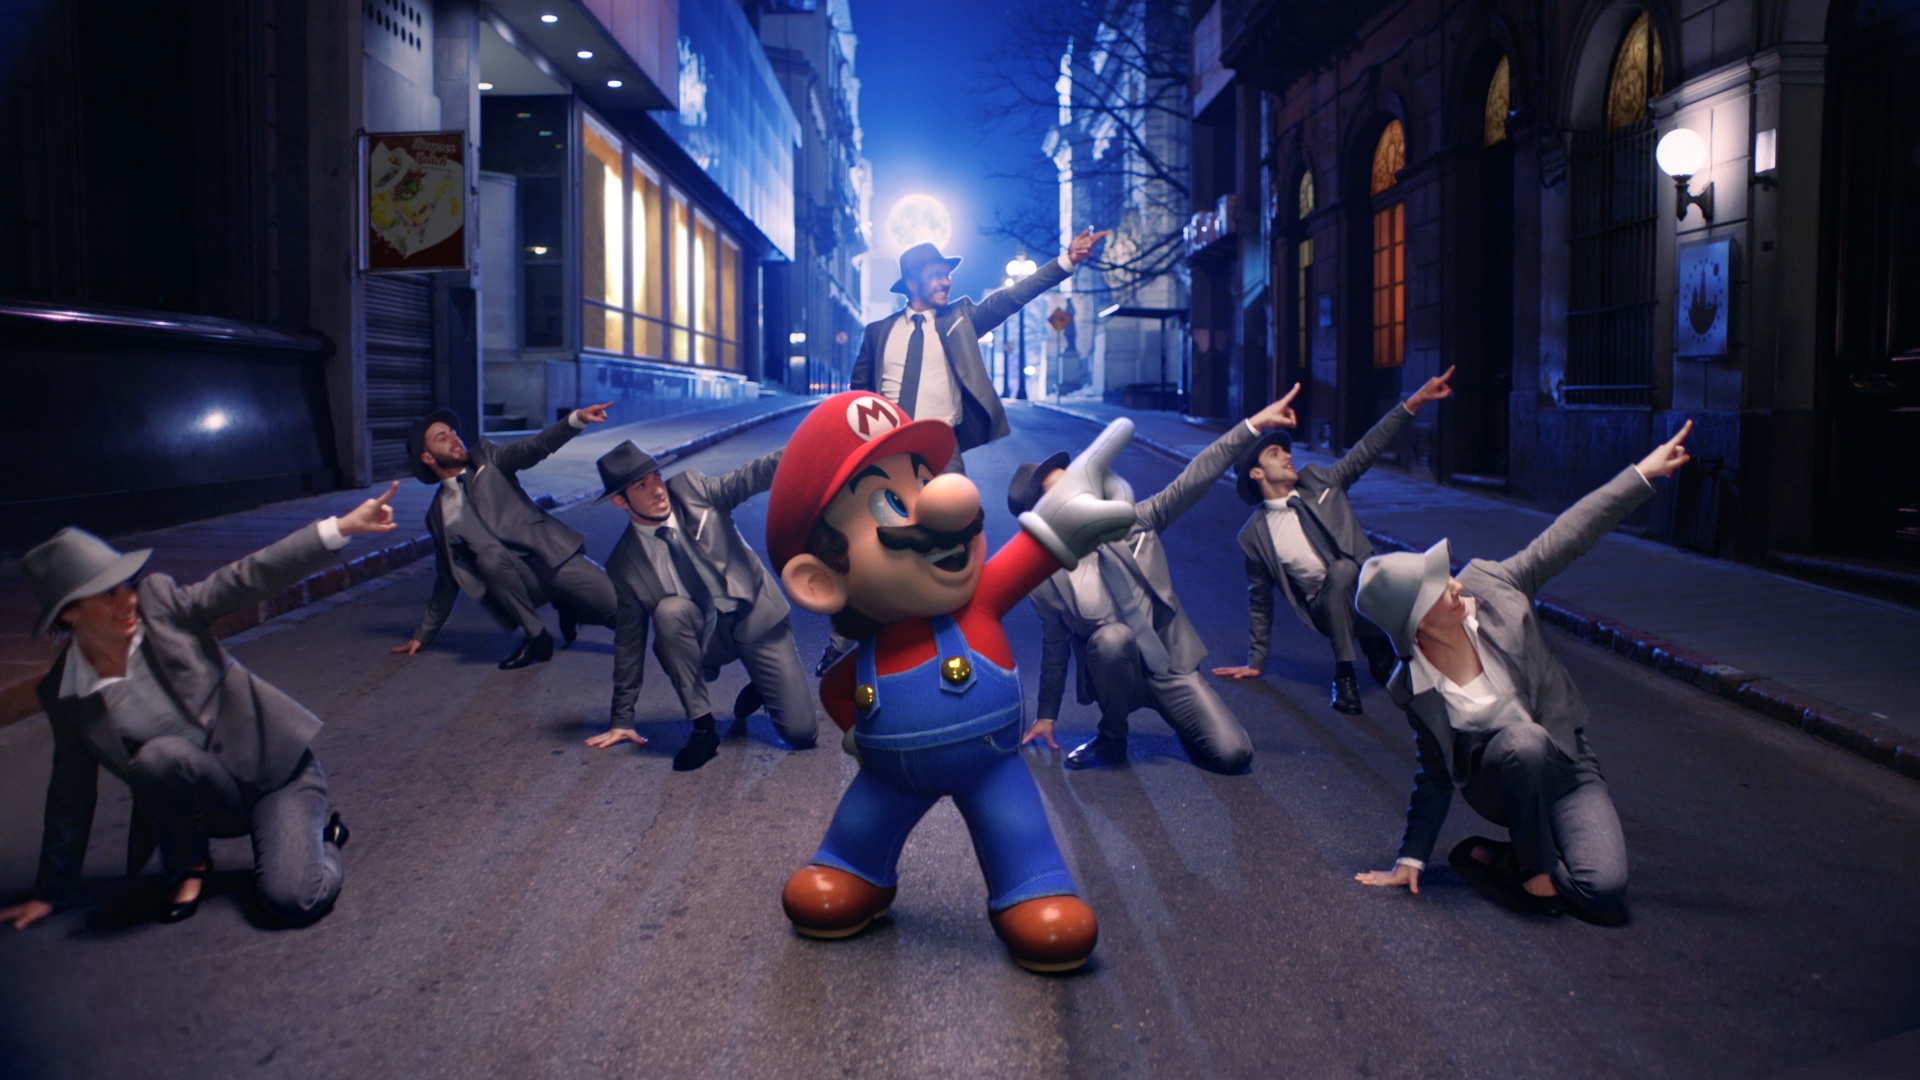 Nintendo Promotes Super Mario Odyssey With Live Action Music Video